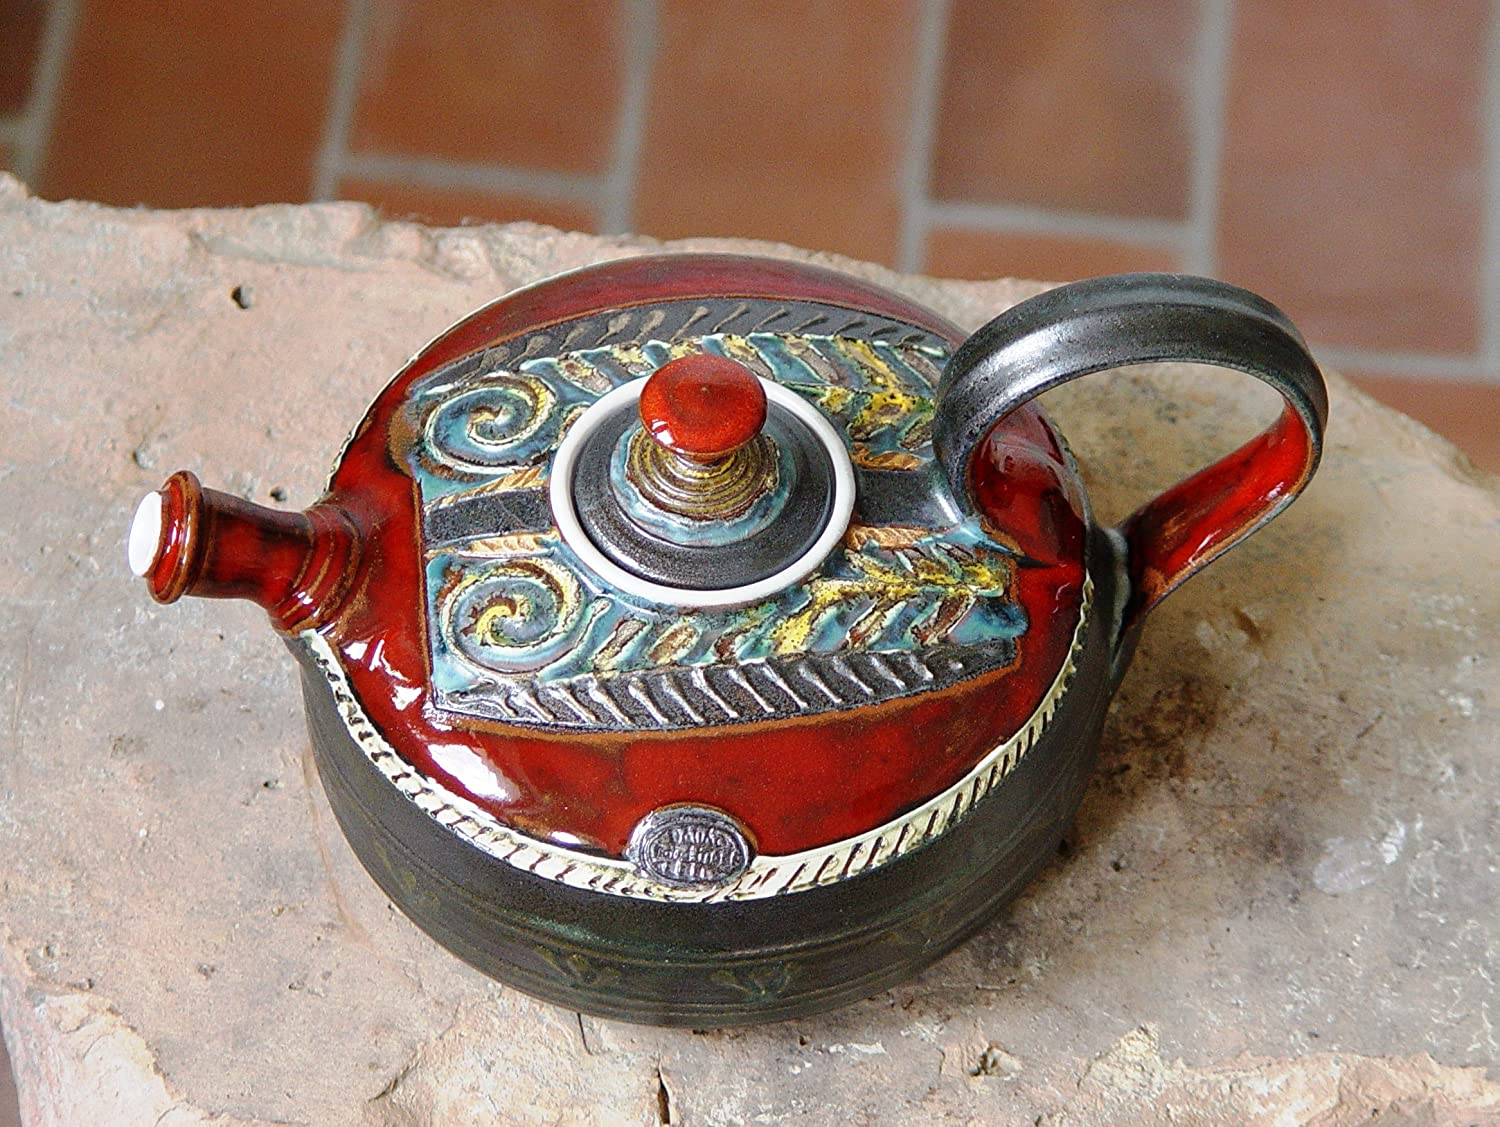 Ceramic Teapot - Handmade Pottery Tea Kettle - Clay Tea Pot - Artistic and Functional Pottery - Clay Art - Earthenware Teapot - Pottery Gift